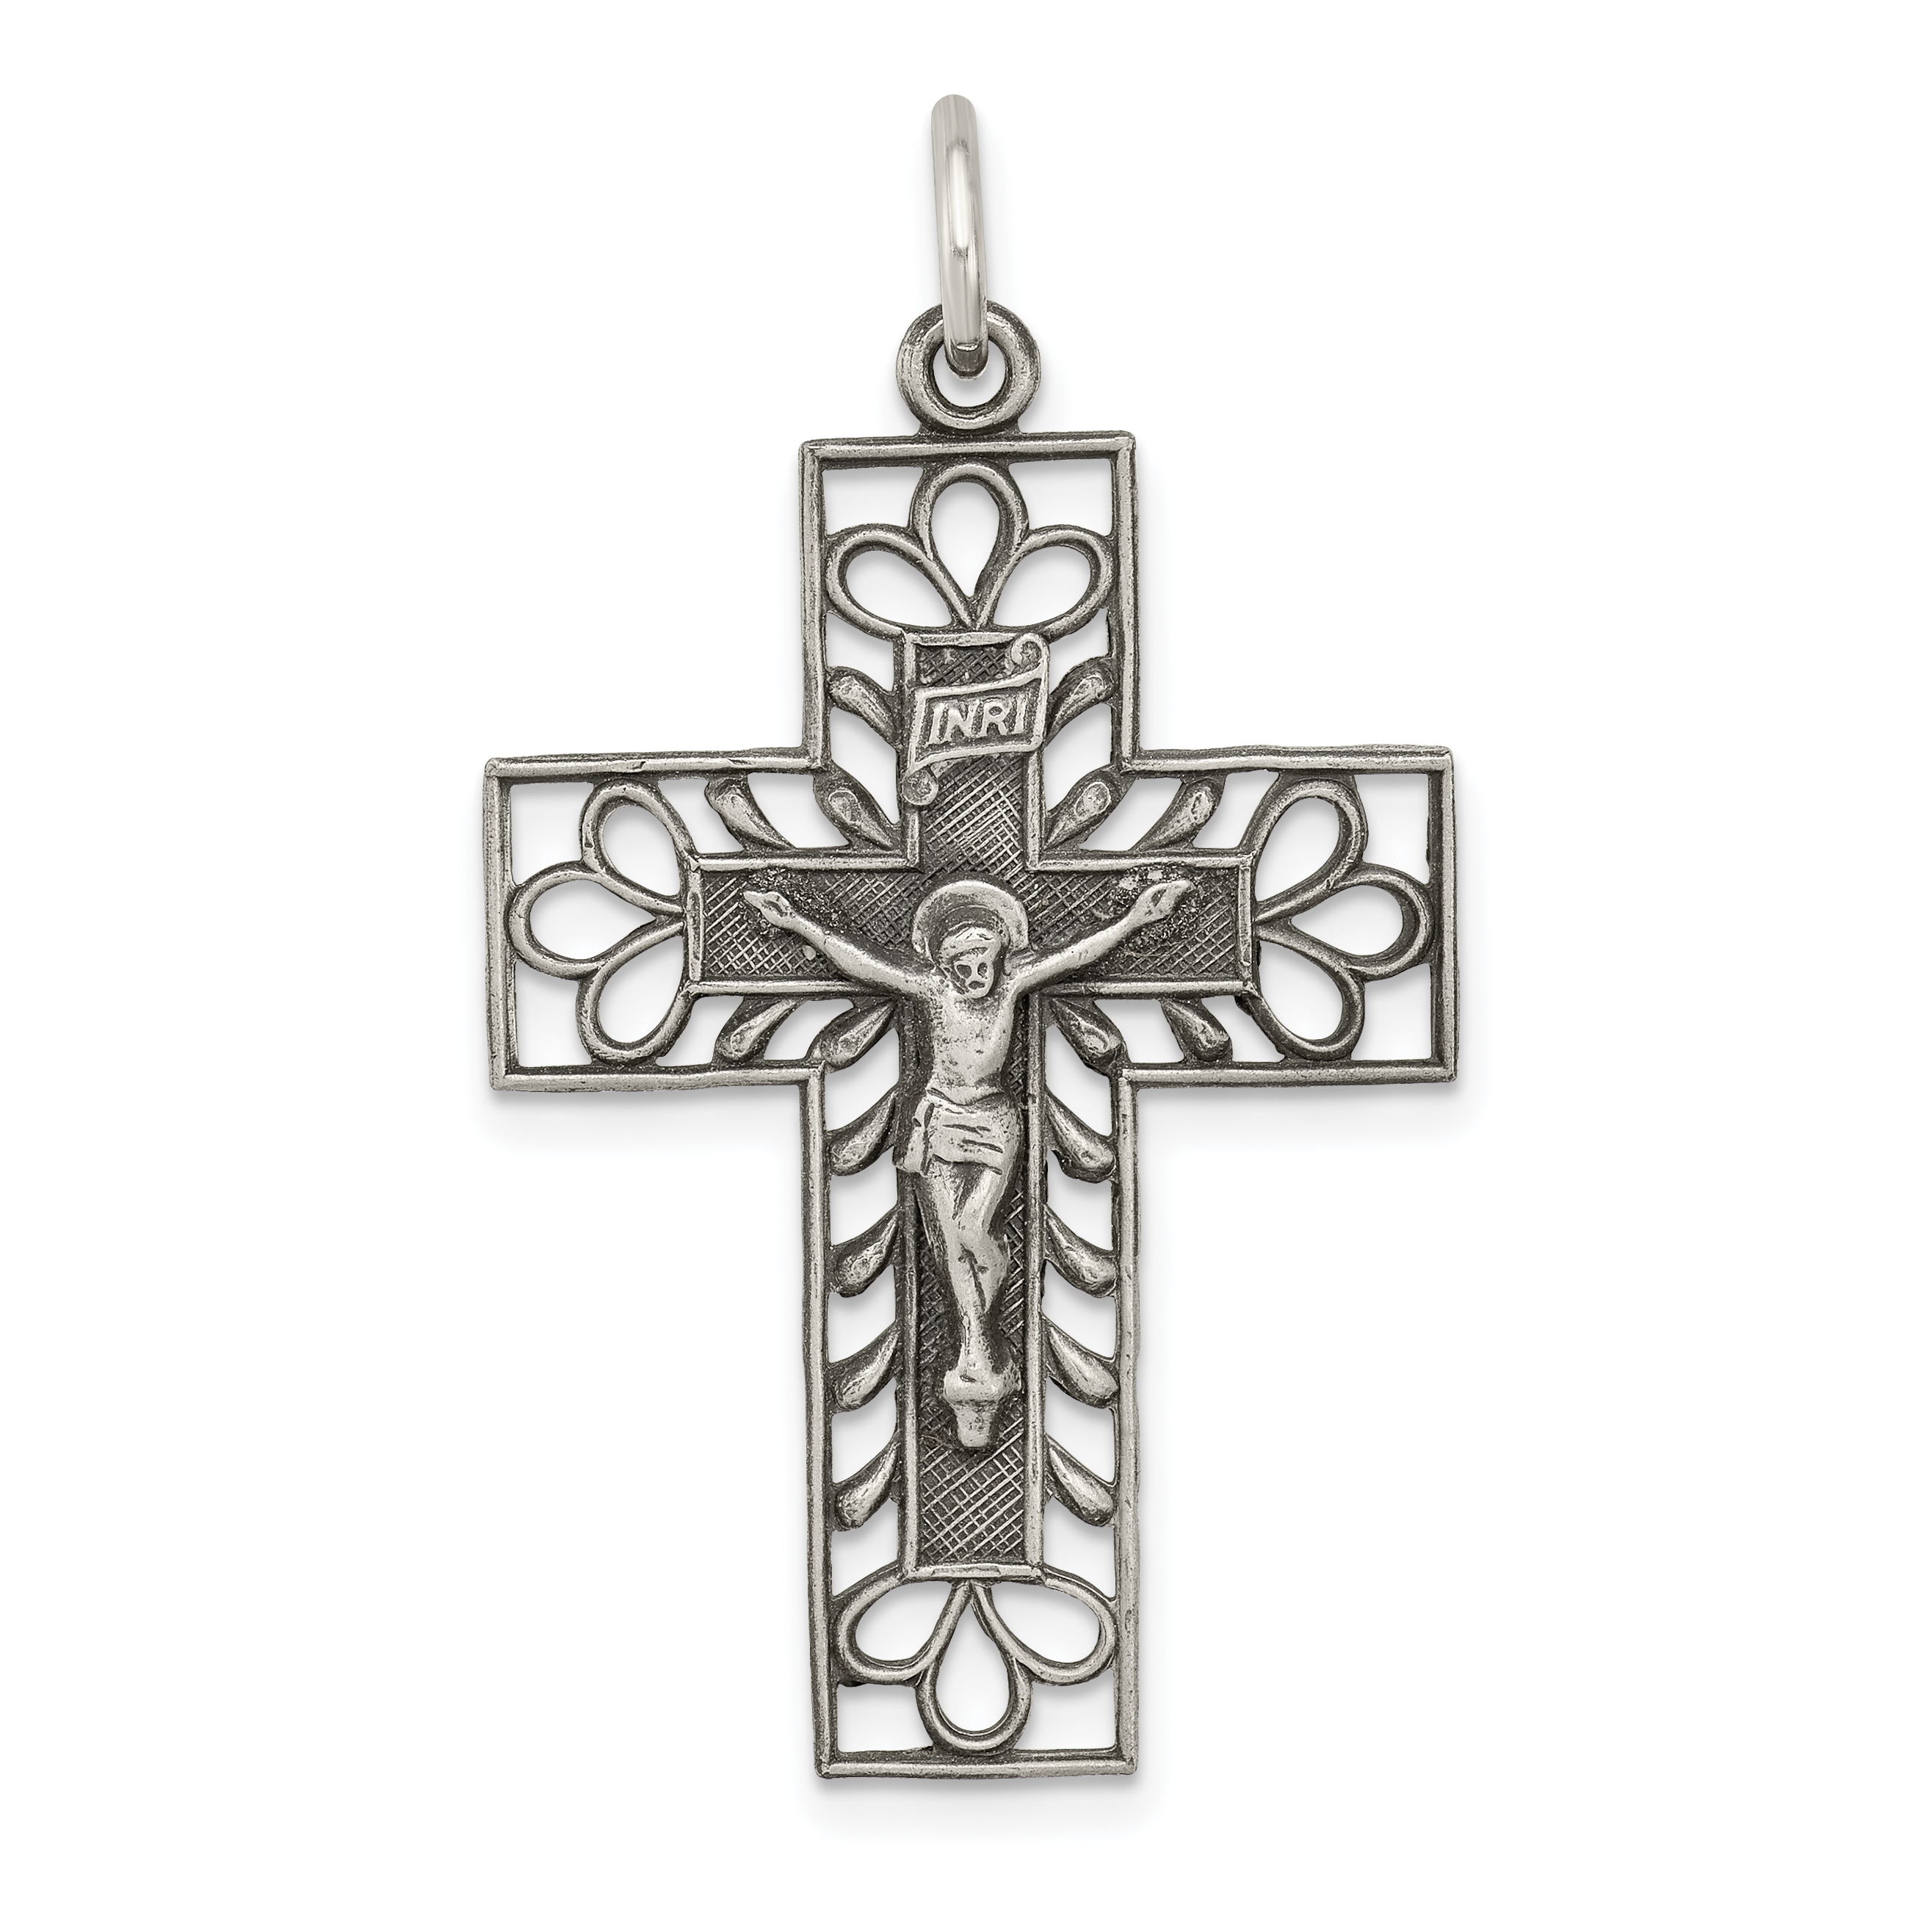 Sterling Silver Antiqued Brushed INRI Crucifix Pendant Solid Pendants /& Charms Jewelry